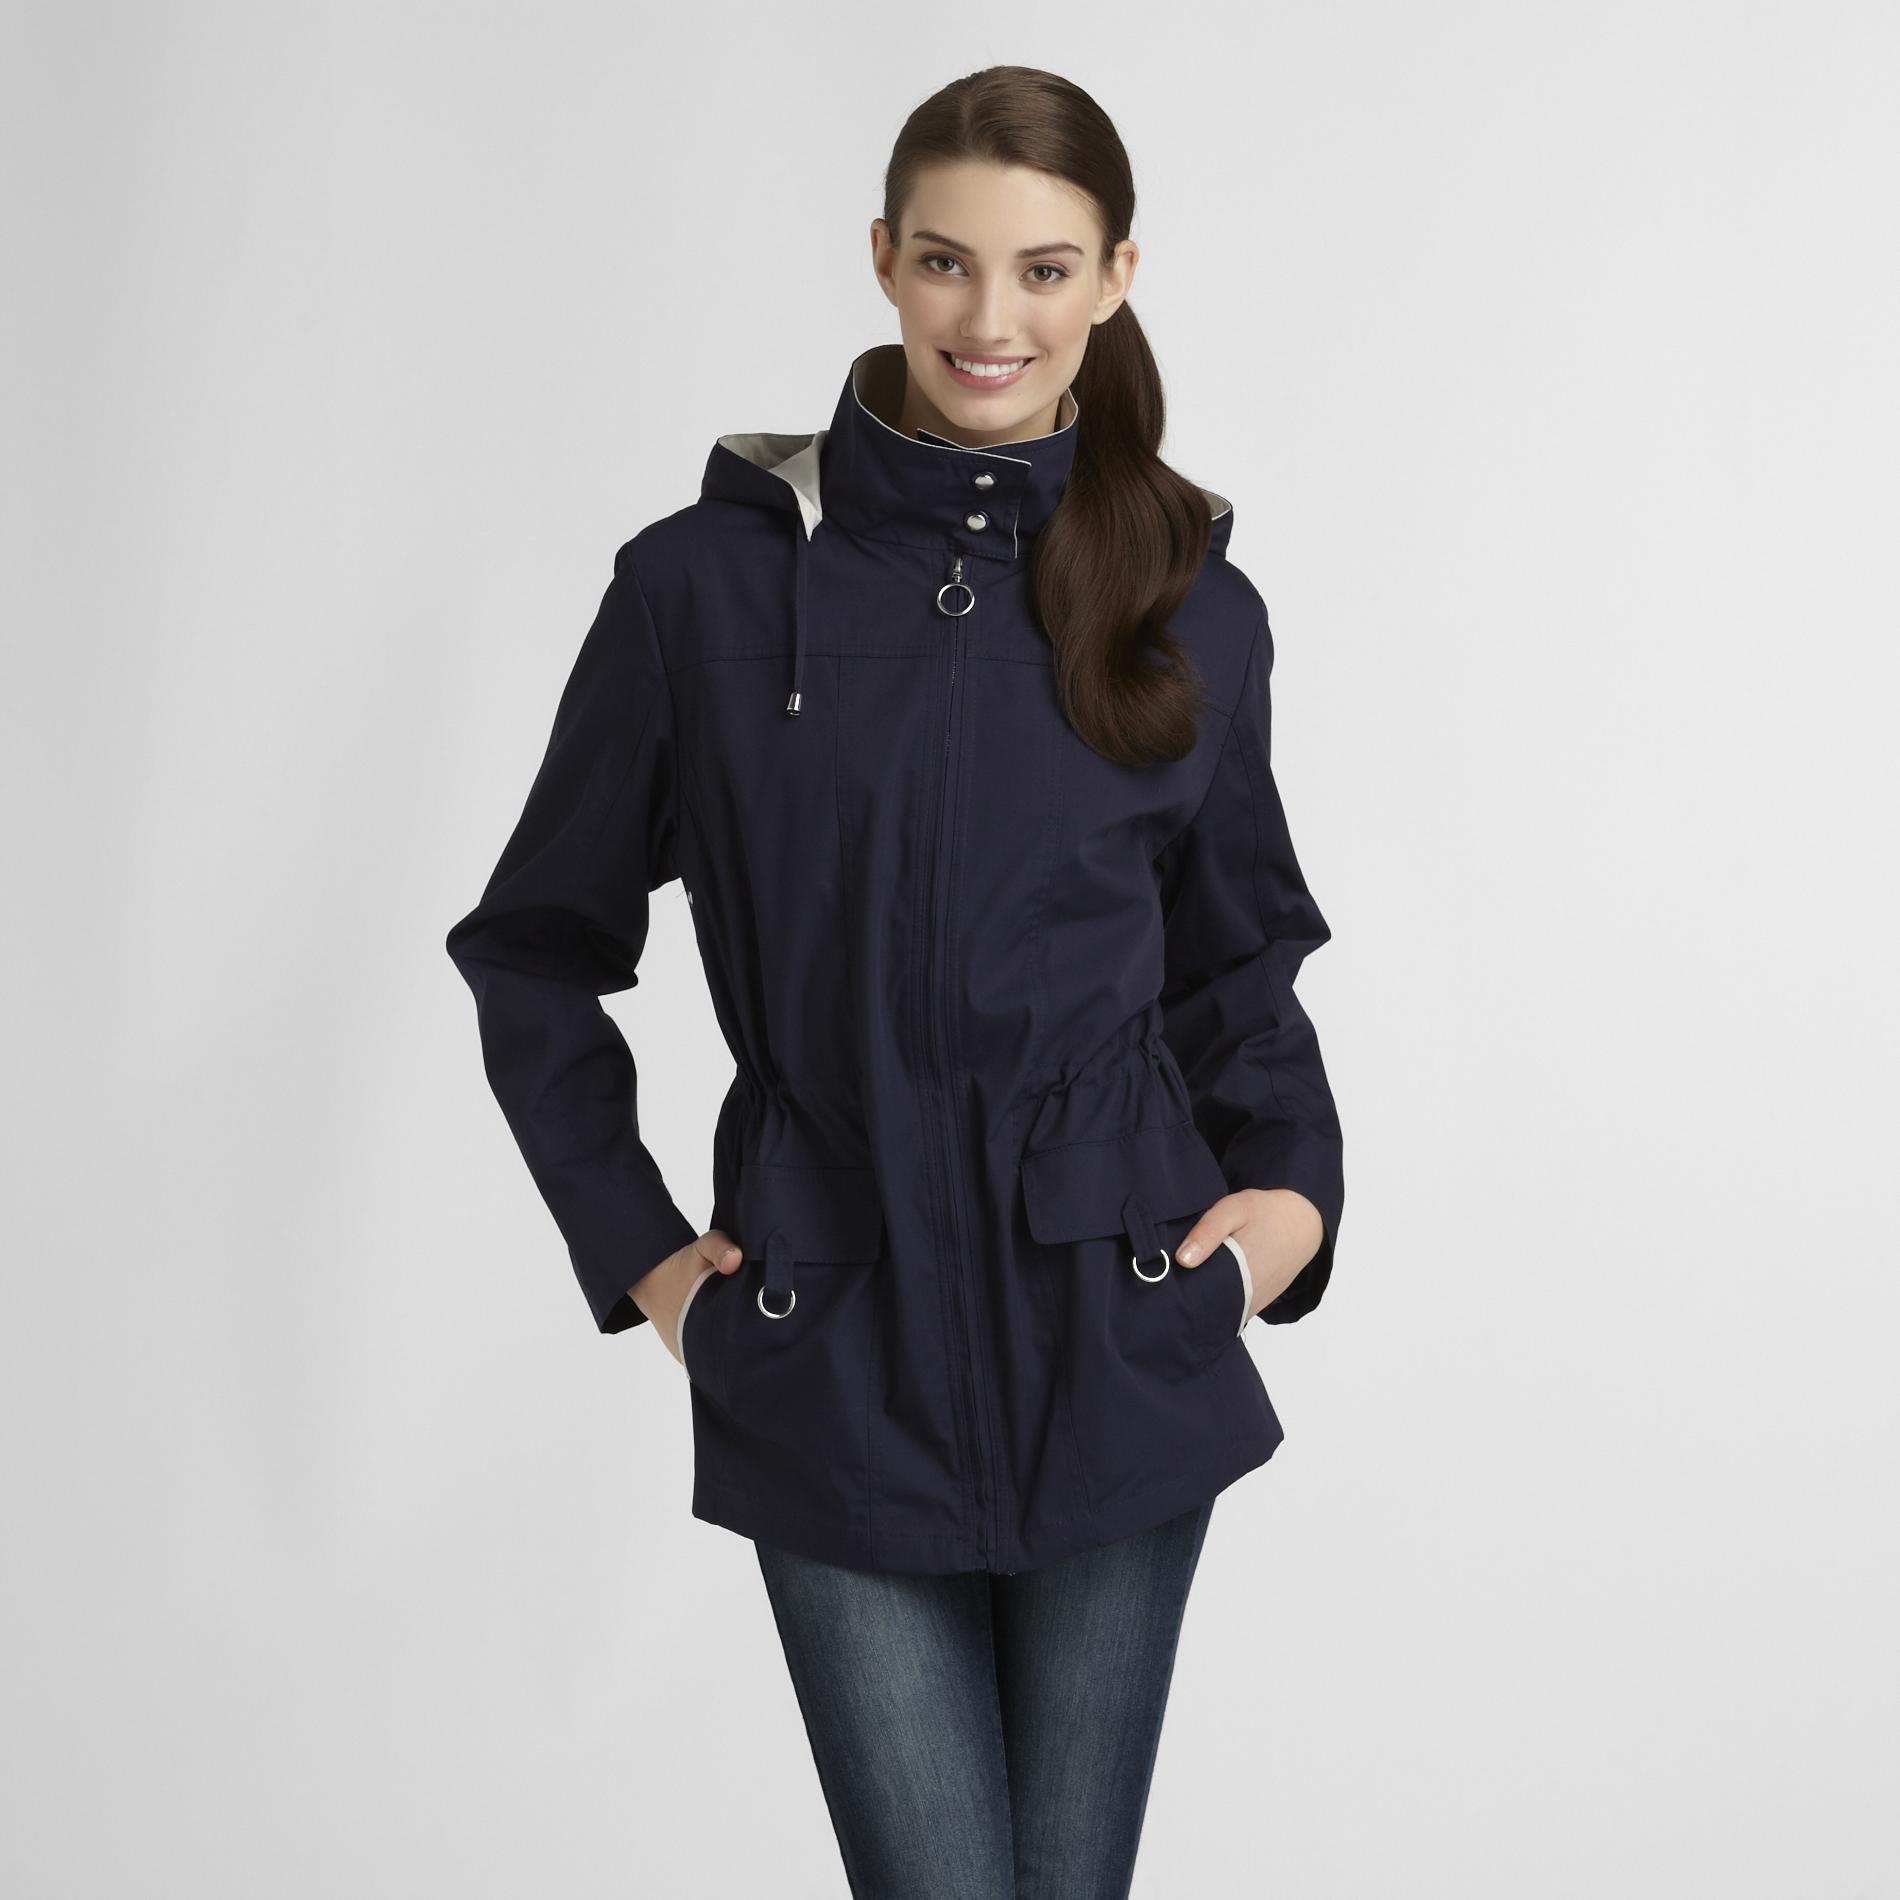 Mackintosh Women's Poplin Anorak Jacket at Sears.com